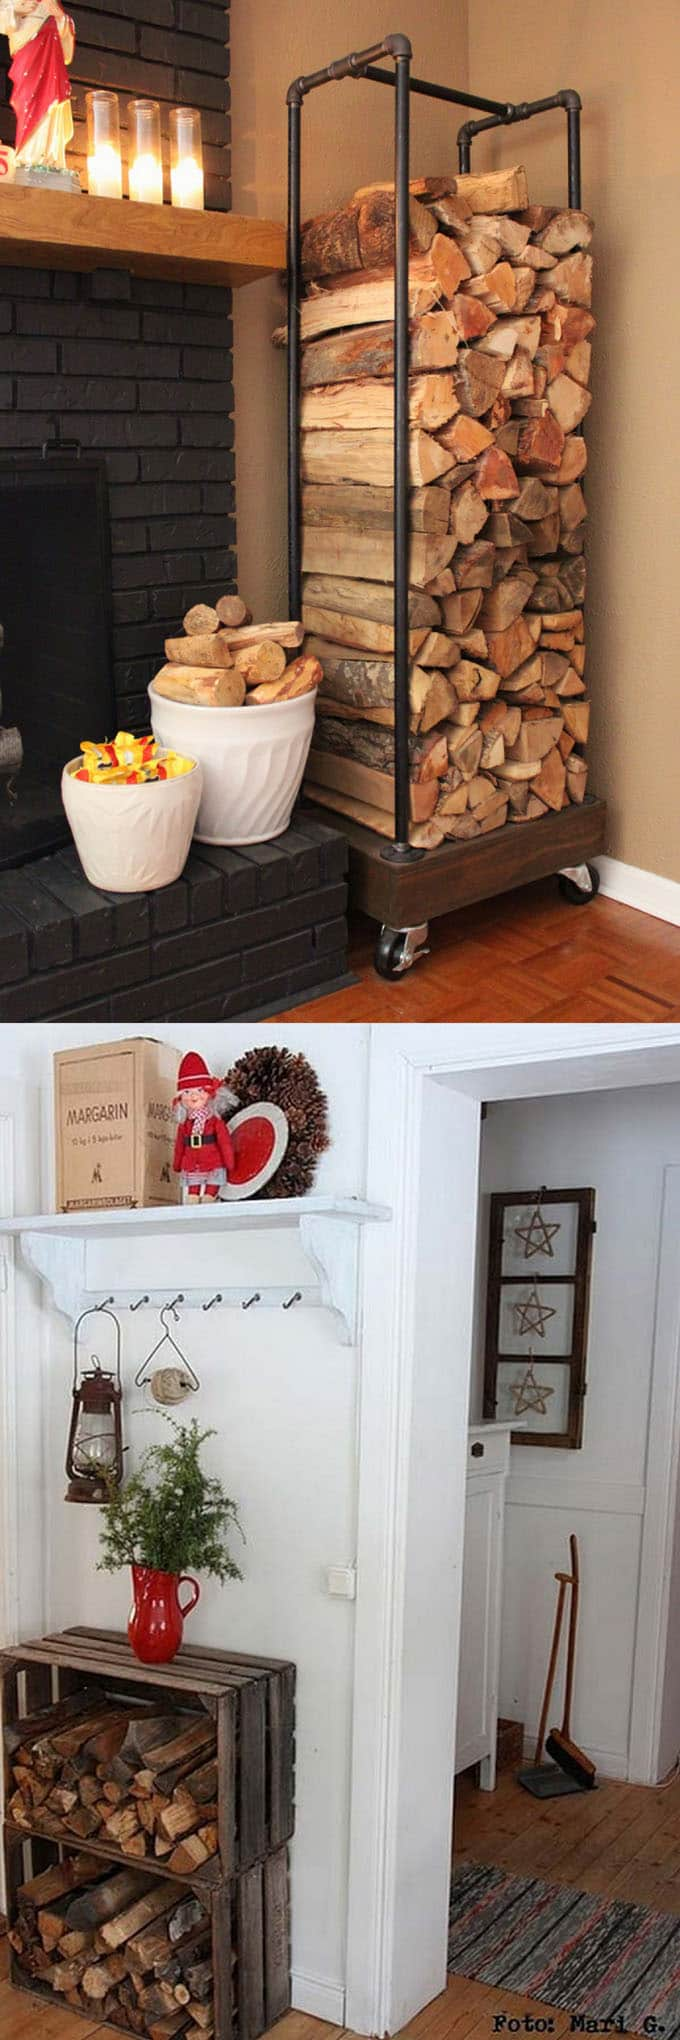 15-firewood-rack-storage-ideas-apieceofrainbow-7